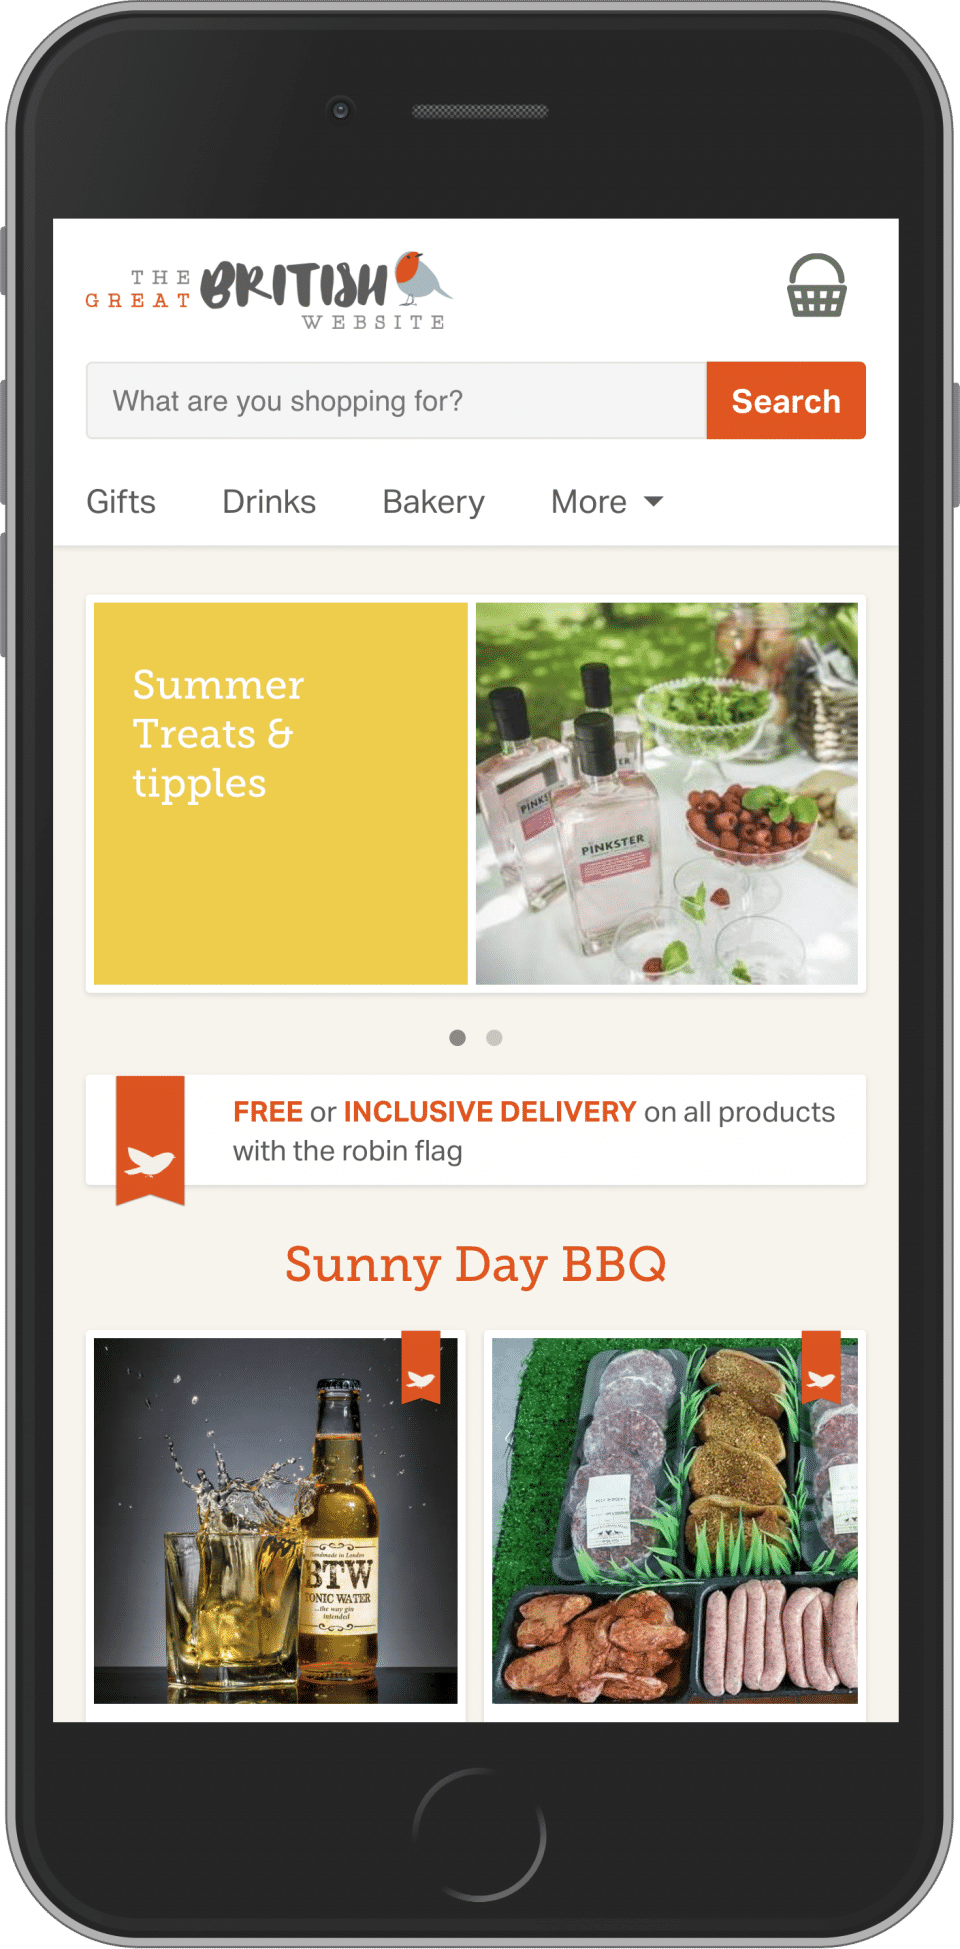 An ecommerce website for The Great British Website selling British food and produce.